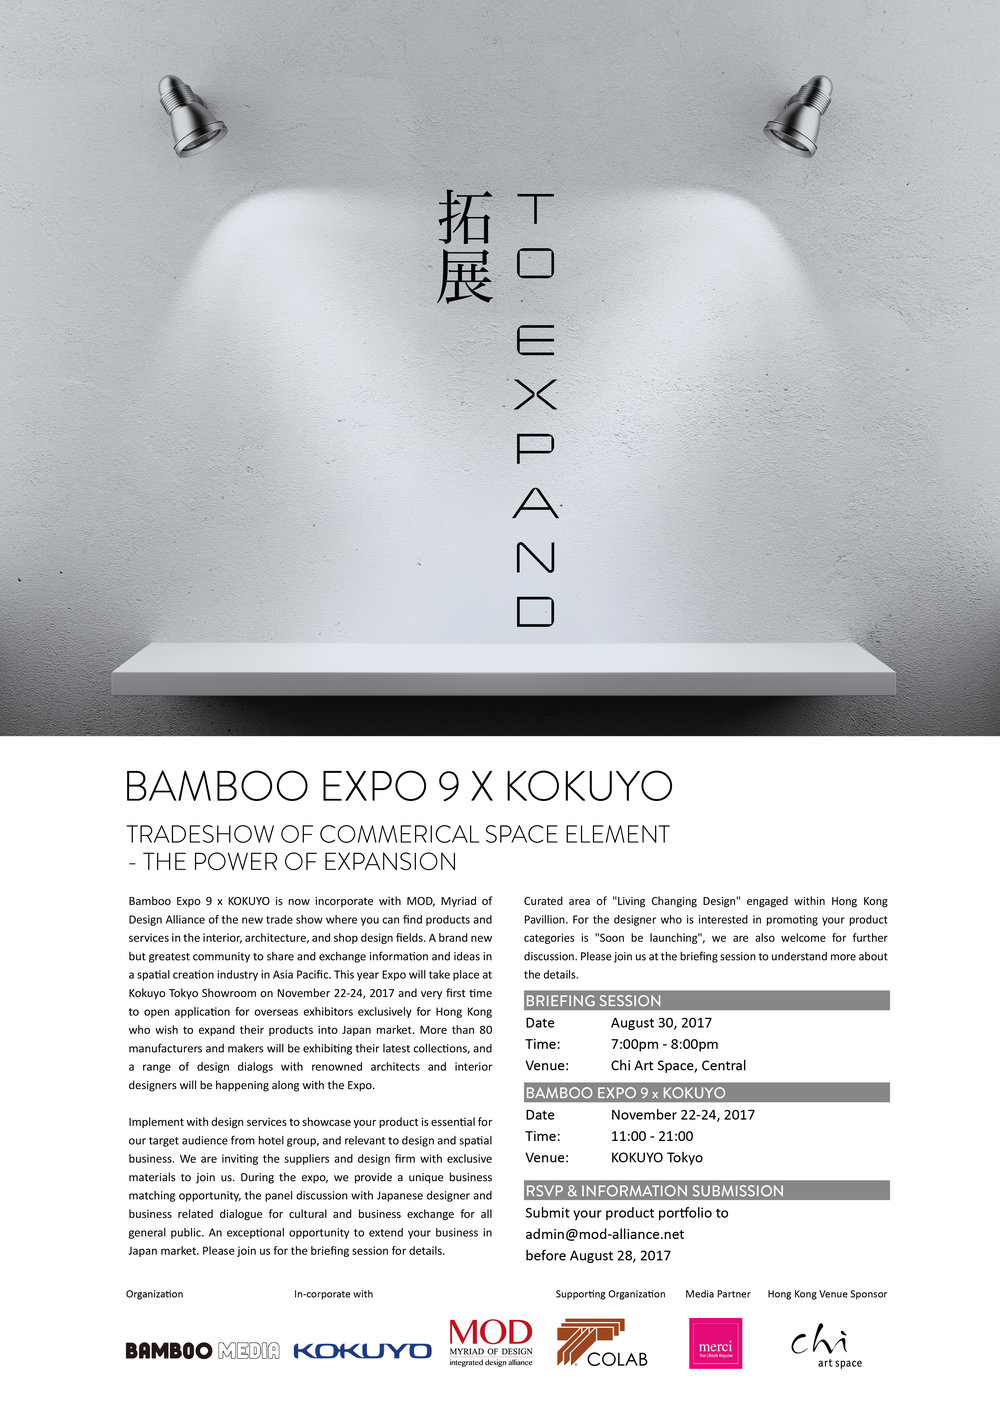 "Bamboo Expo 9 x KOKUYO is now incorporate with MOD, Myriad of Design Alliance of the new trade show where you can find products and services in the interior, architecture, and shop design fields. A brand new but greatest community to share and exchange information and ideas in a spatial creation industry in Asia Pacific. This year Expo will take place at Kokuyo Tokyo Showroom on November 22-24, 2017 and very first time to open application for overseas exhibitors exclusively for Hong Kong who wish to expand their products into Japan market. More than 80 manufacturers and makers will be exhibiting their latest collections, and a range of design dialogs with renowned architects and interior designers will be happening along with the Expo.  Implement with design services to showcase your product is essential for our target audience from hotel group, and relevant to design and spatial business. We are inviting the suppliers and design firm with exclusive materials to join us. During the expo, we provide a unique business matching opportunity, the panel discussion with Japanese designer and business related dialogue for cultural and business exchange for all general public. An exceptional opportunity to extend your business in Japan market. Please join us for the briefing session for details. Curated area of ""Living Changing Design"" engaged within Hong Kong Pavillion. For the designer who is interested in promoting your product categories is ""Soon be launching,"" we are also welcome for further discussion. Please join us at the briefing session to understand more about the details.   BRIEFING SESSION Date        August 30, 2017 Time:        7:00pm - 8:00pm Venue:     Chi Art Space, Central  BAMBOO EXPO 9 x KOKUYO Date        November 22-24, 2017 Time:        11:00 - 21:00 Venue:     KOKUYO Tokyo   RSVP & INFORMATION SUBMISSION Submit your product portfolio to admin@mod-alliance.net before August 28, 2017"